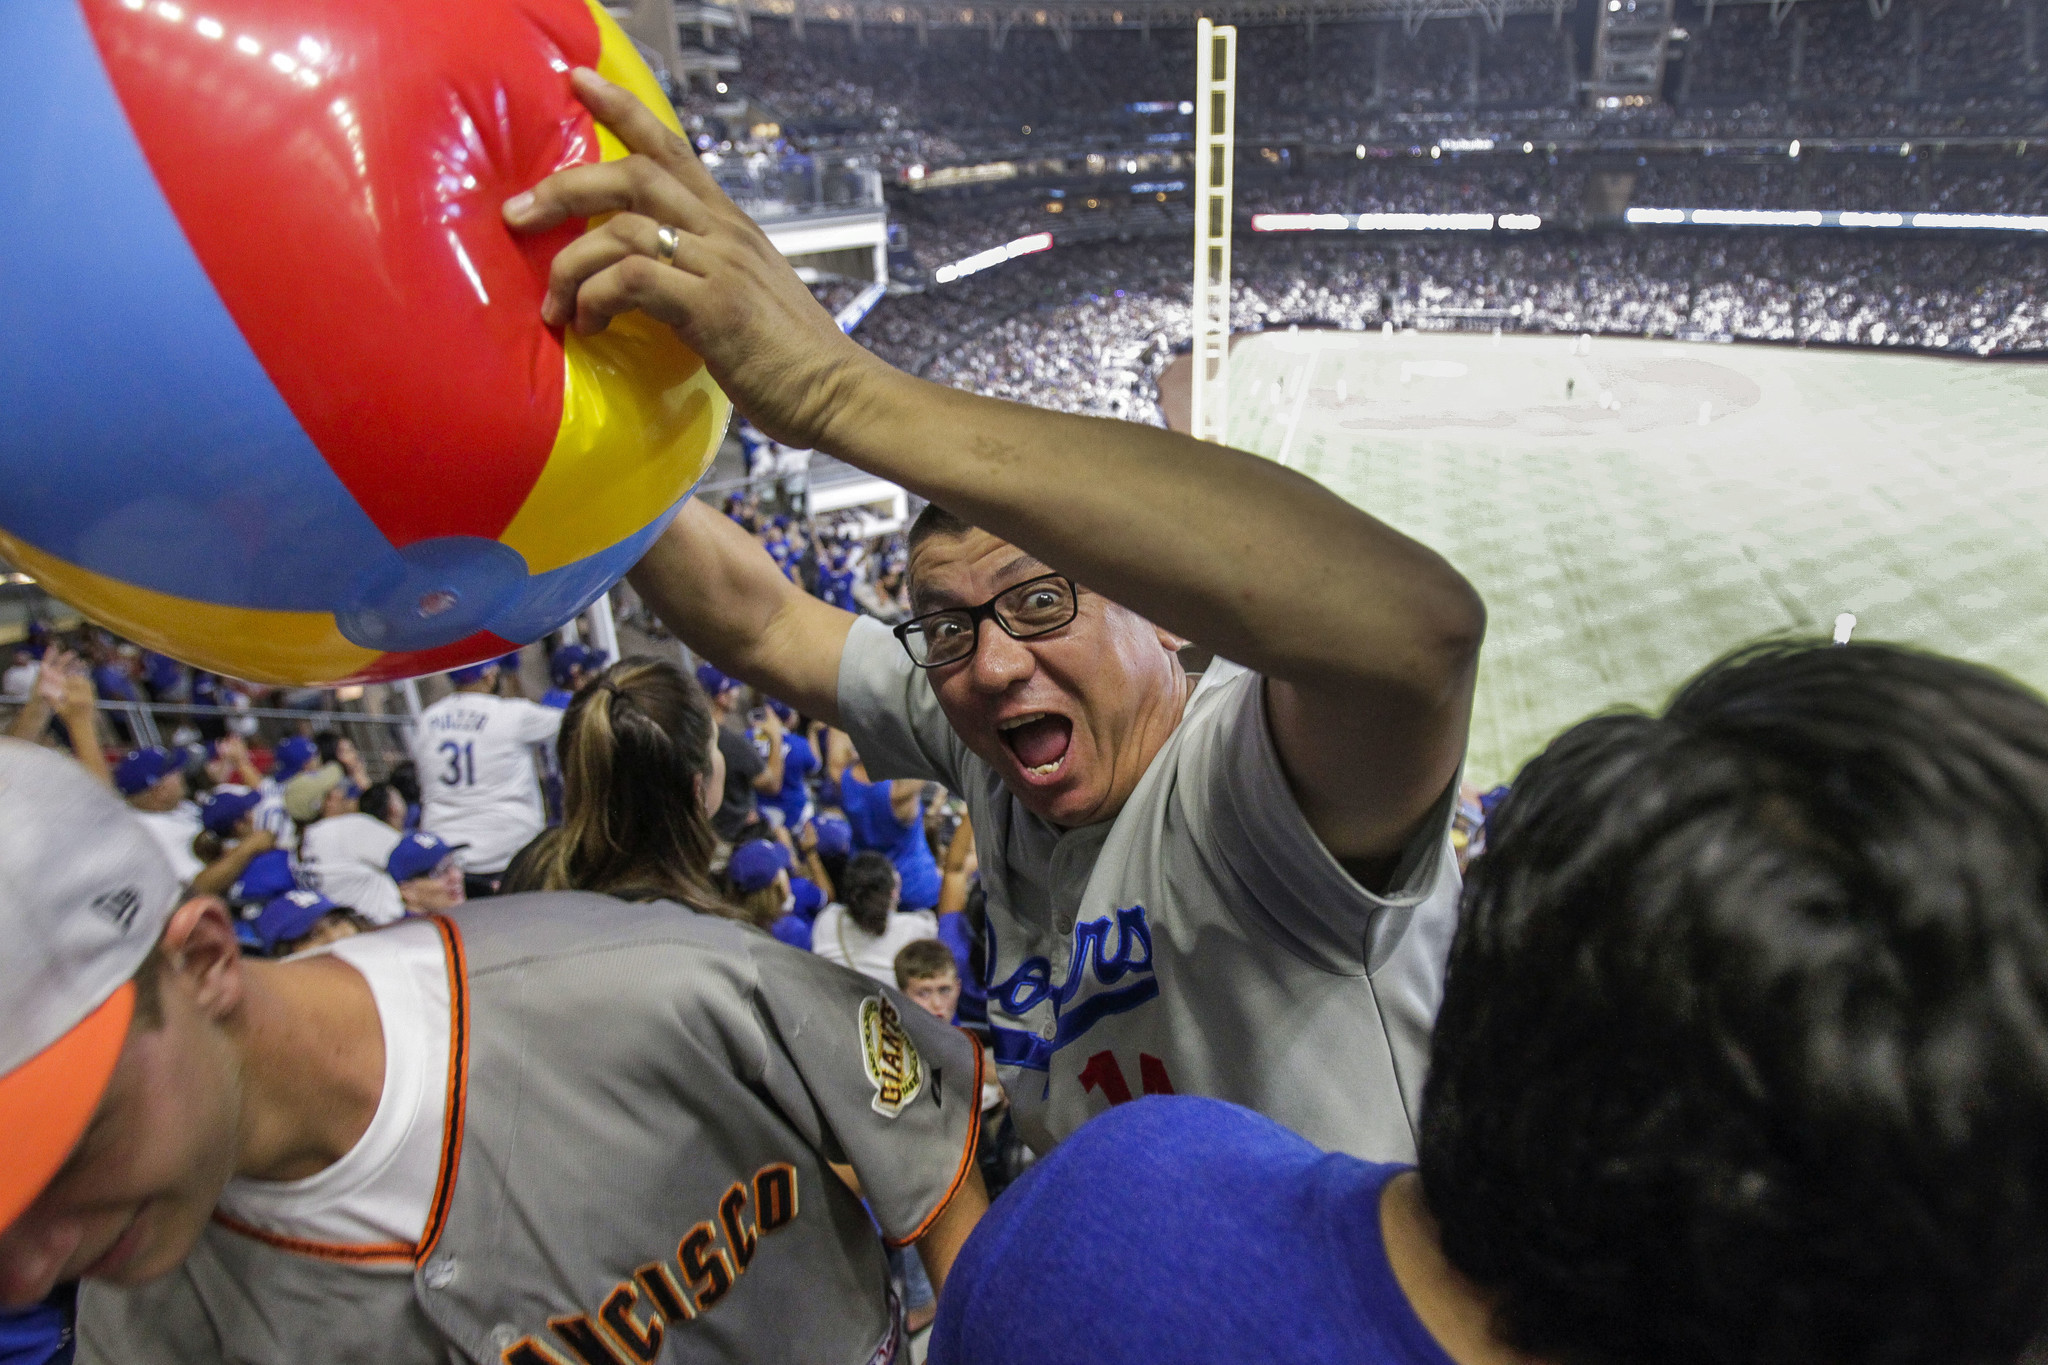 A Pantone 294 Dodgers fan club member grabs a beach ball as he and fellow Pantone 294 fans take up a section of seating during the Dodgers vs. San Diego Padres game at Petco Park.